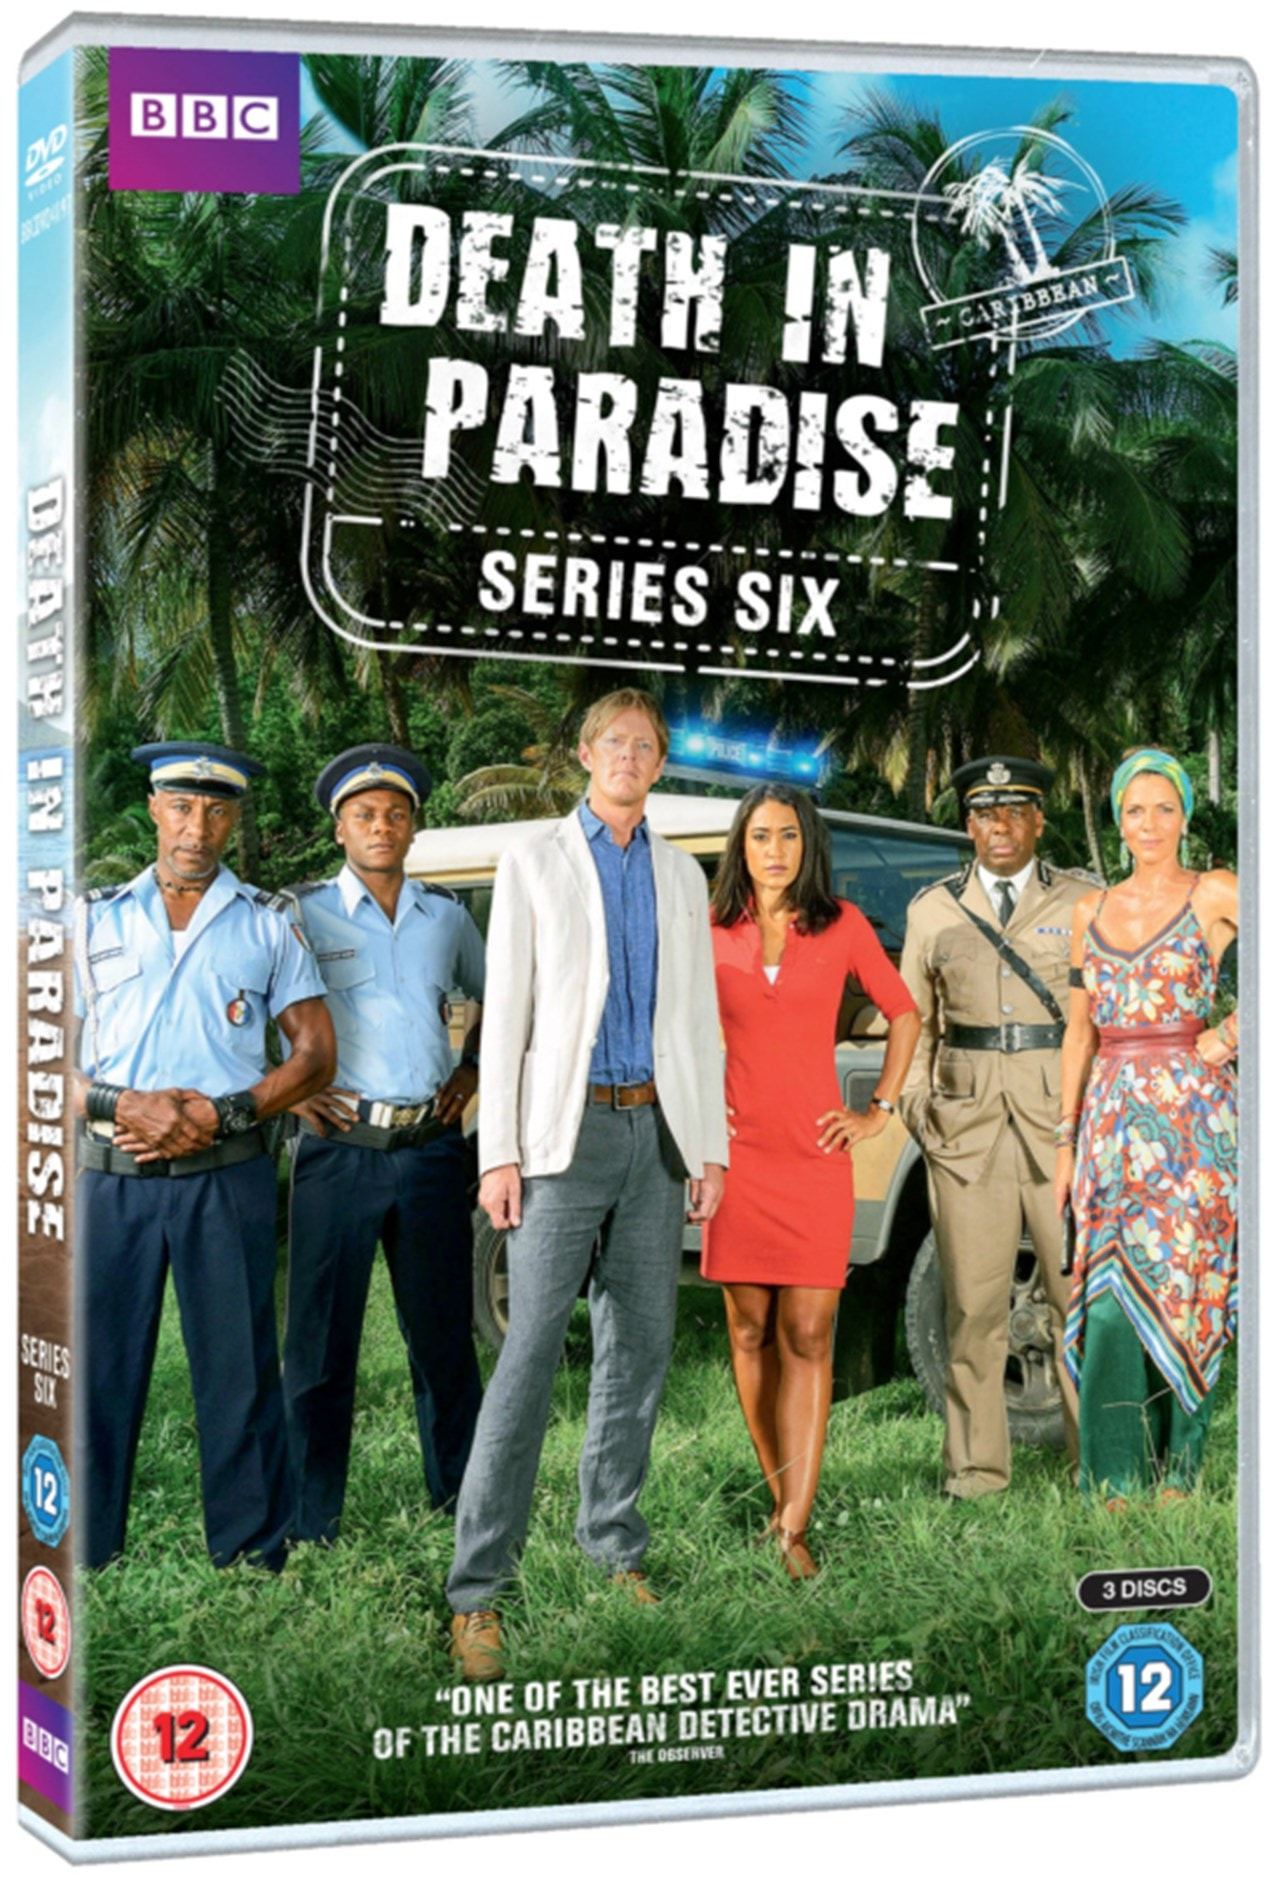 Death in Paradise: Series Six - 2